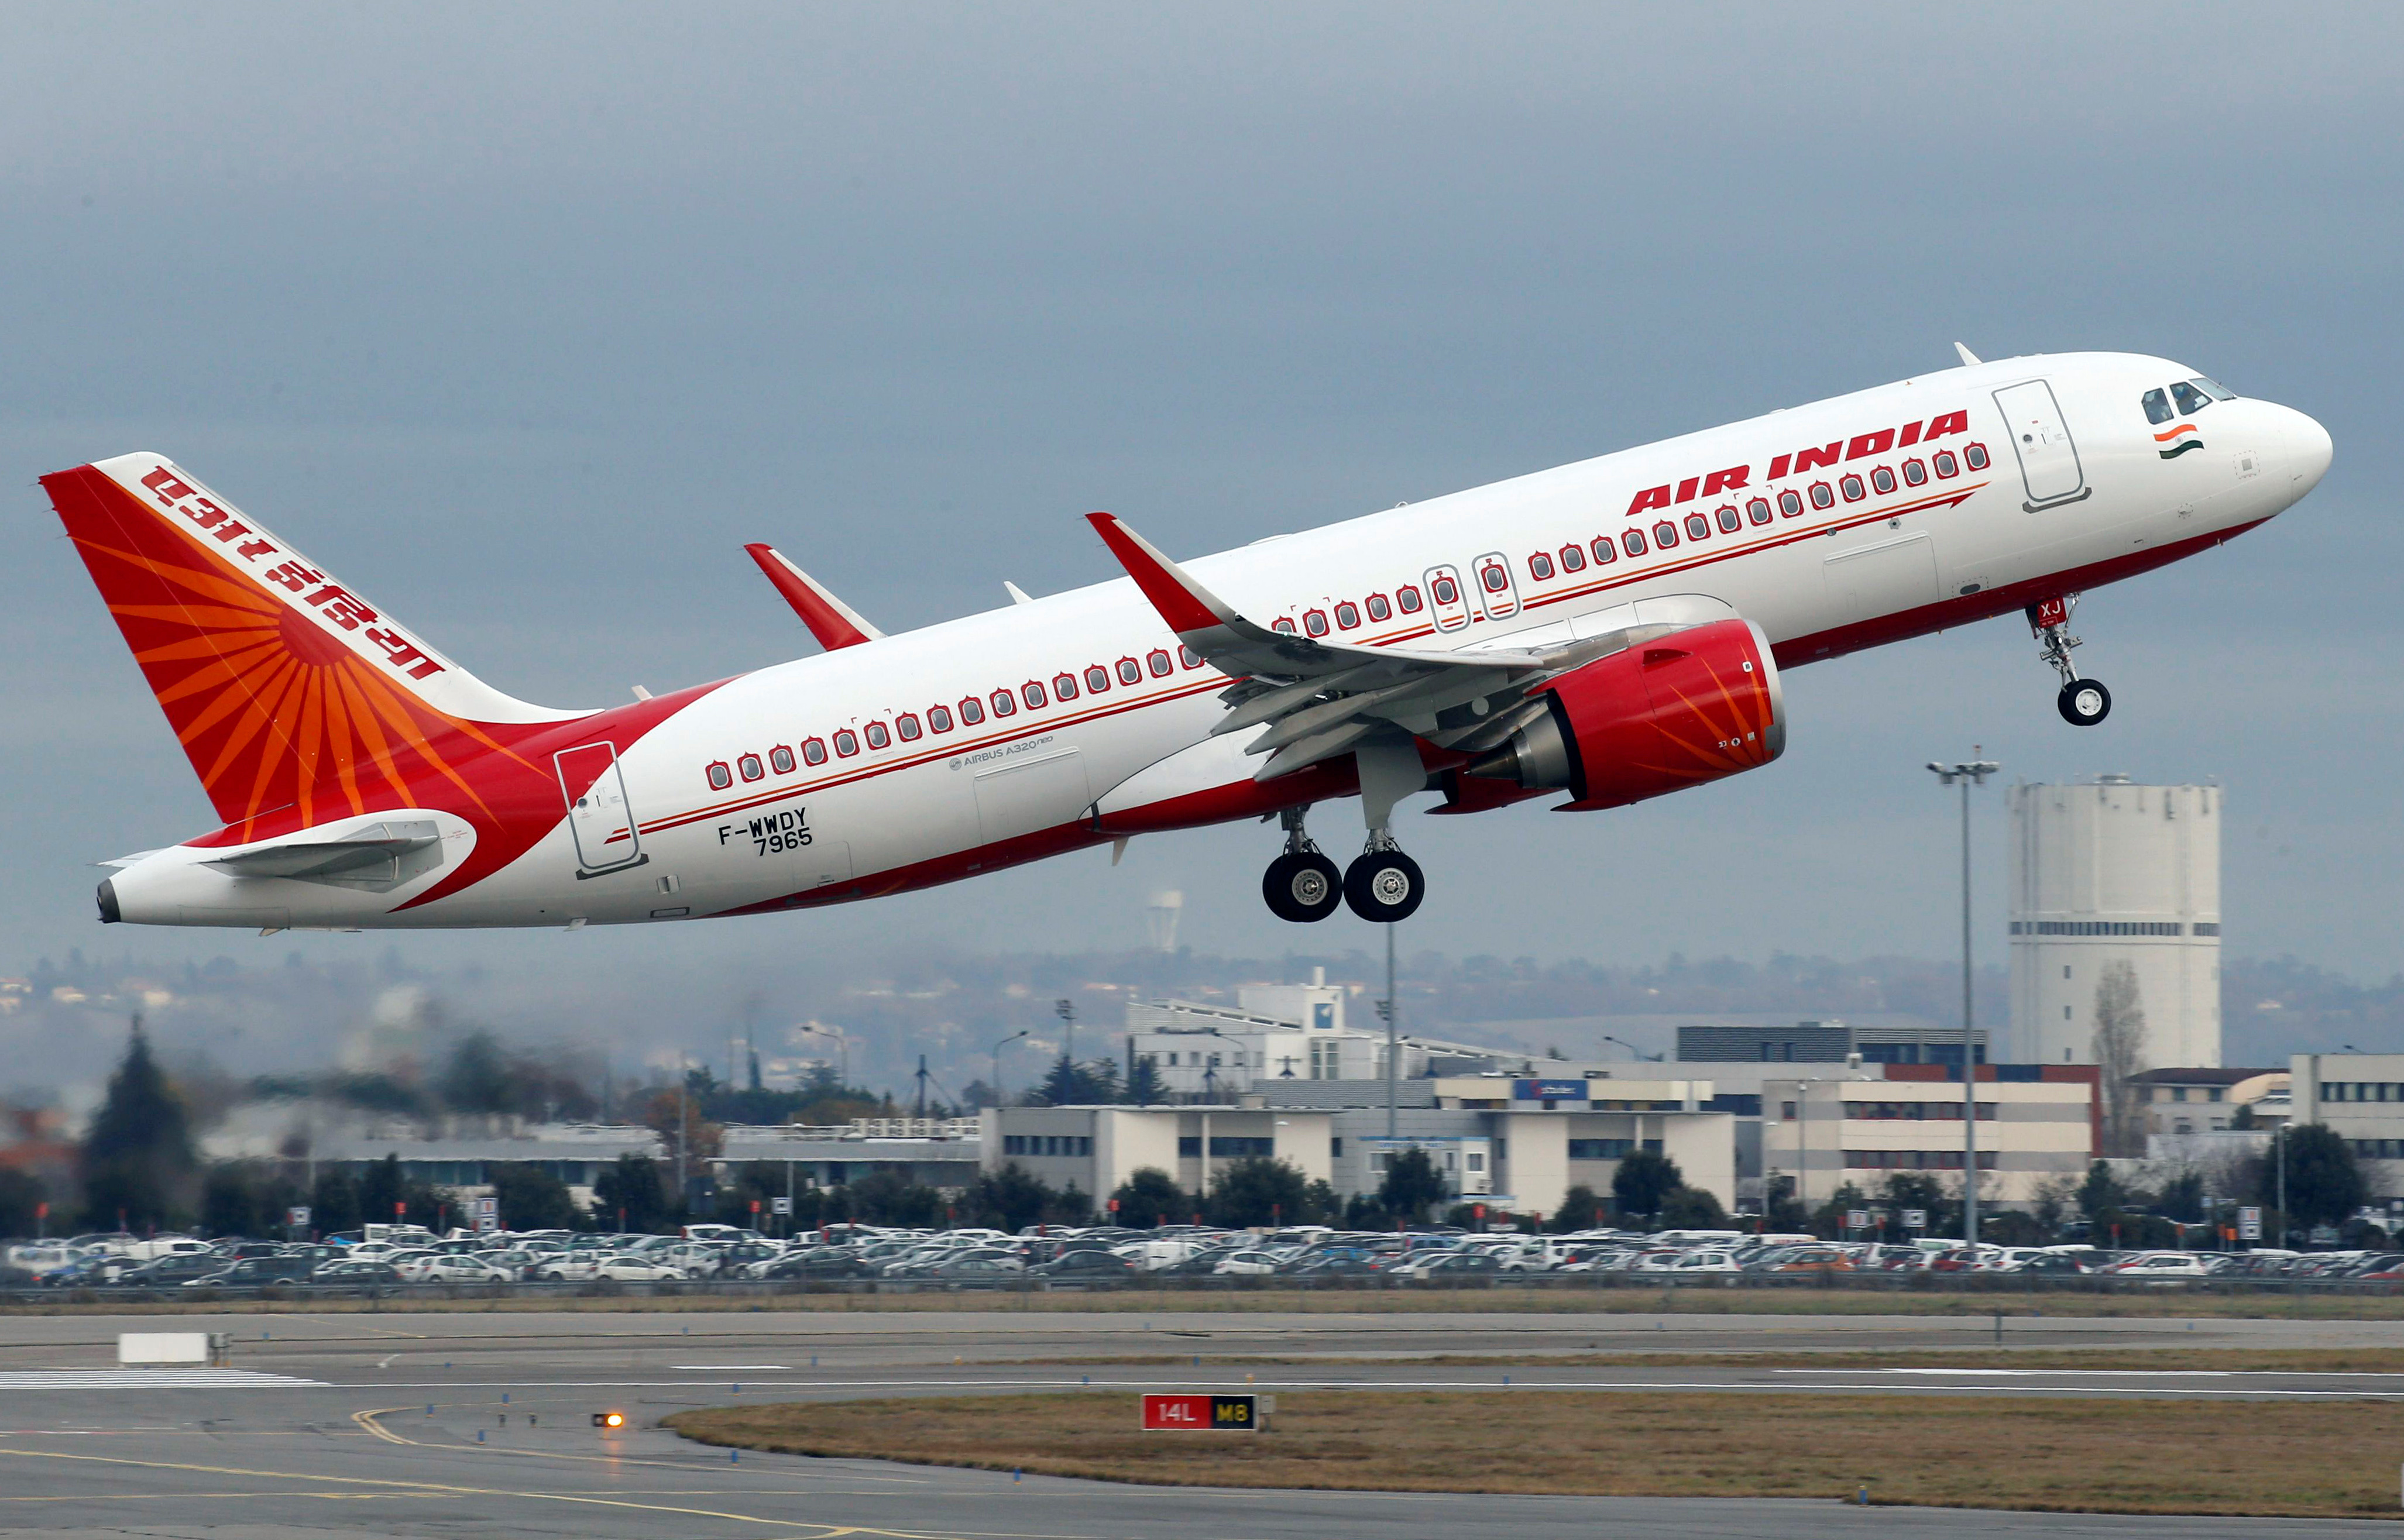 Watch | Is Passenger Safety Left to God's Mercy on Air India Flights?